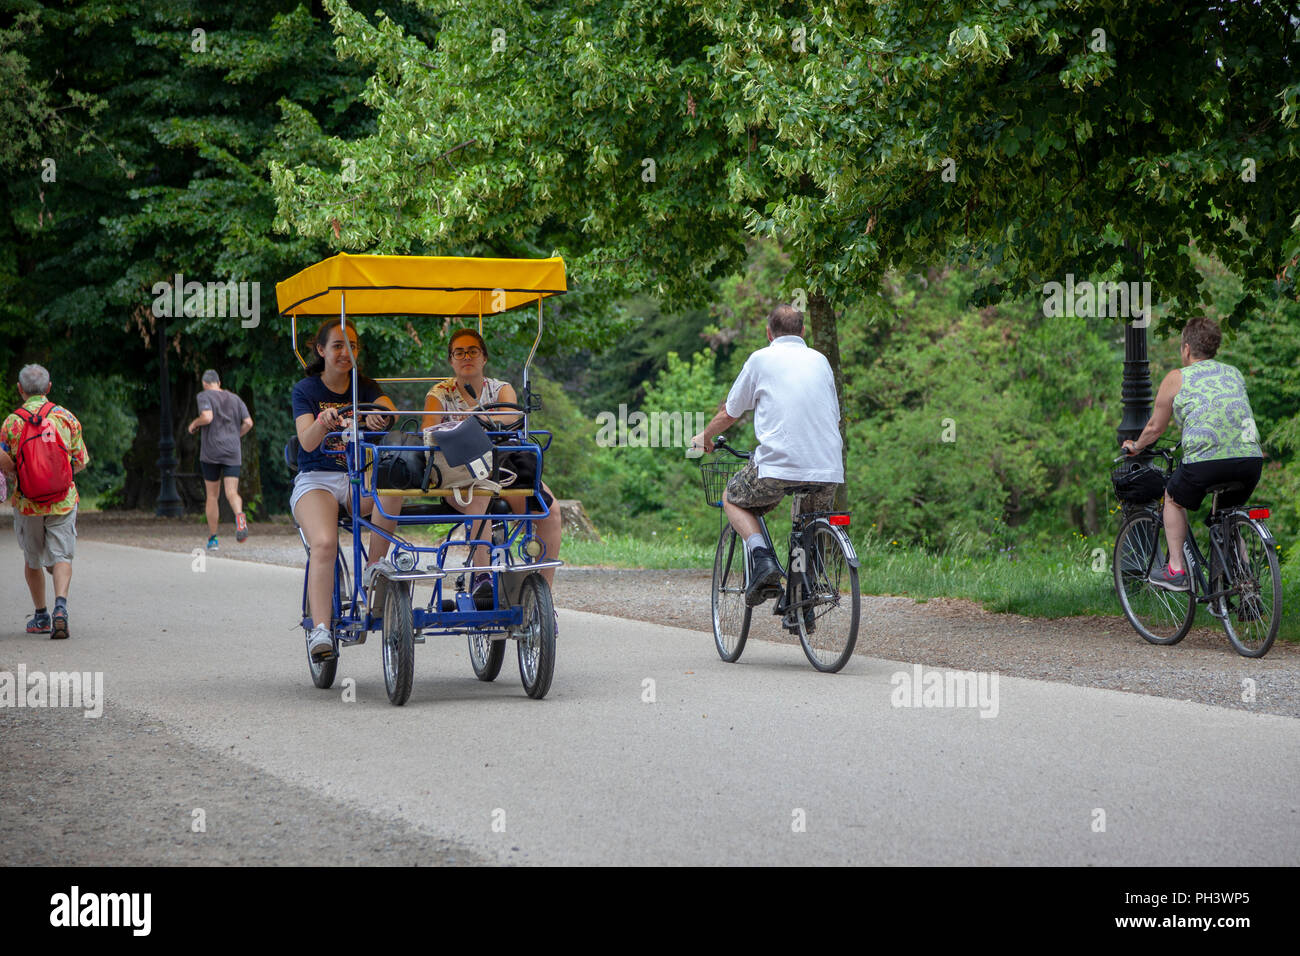 On the ramparts at Lucca (Tuscany - Italy),  tourists having a drive in a four-wheeled pedal car under the shade of hundred-year old trees. - Stock Image